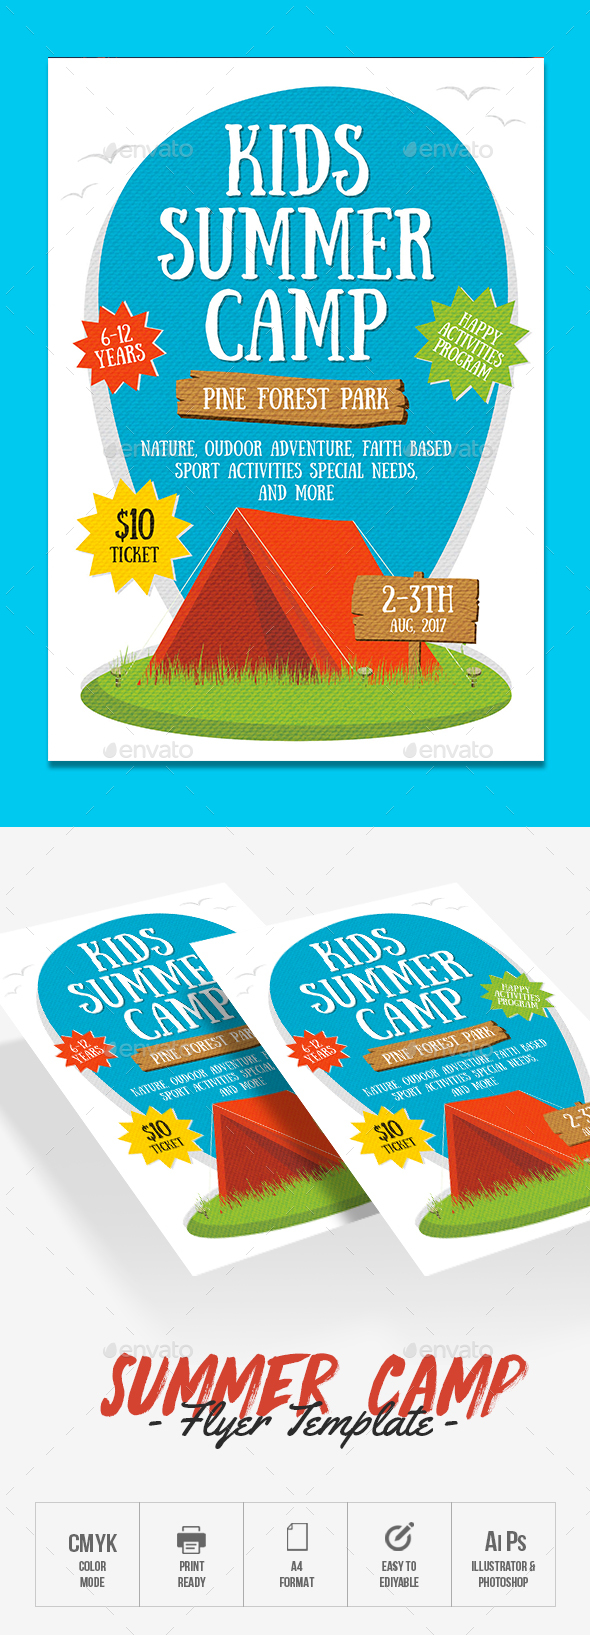 kids summer camp flyer by rockgasm graphicriver. Black Bedroom Furniture Sets. Home Design Ideas